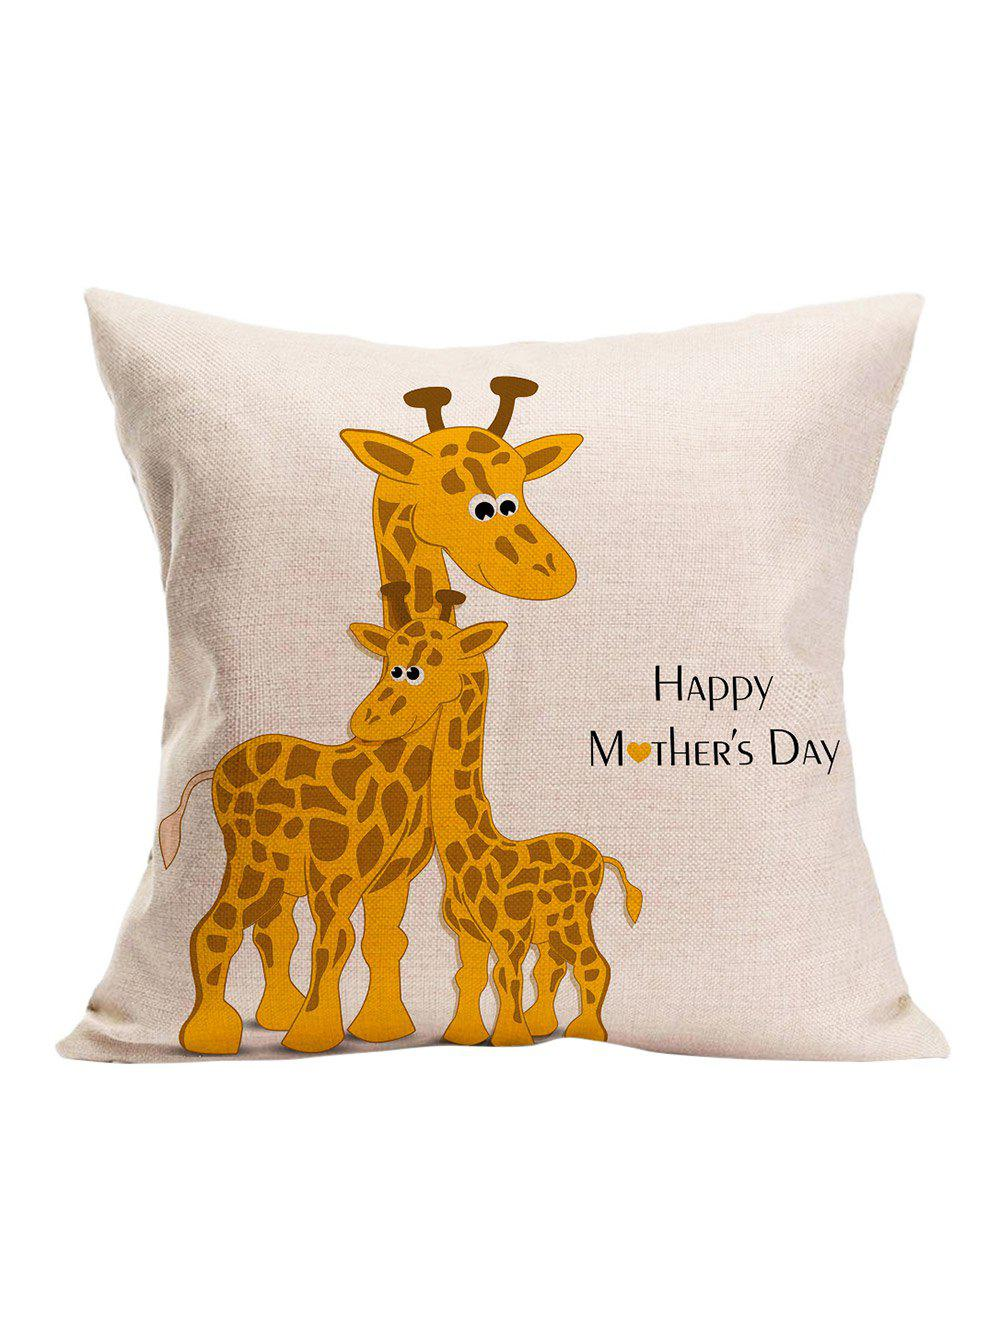 Giraffe Happy Mothers Day Pillow Case OFF WHITE 3 3CM in